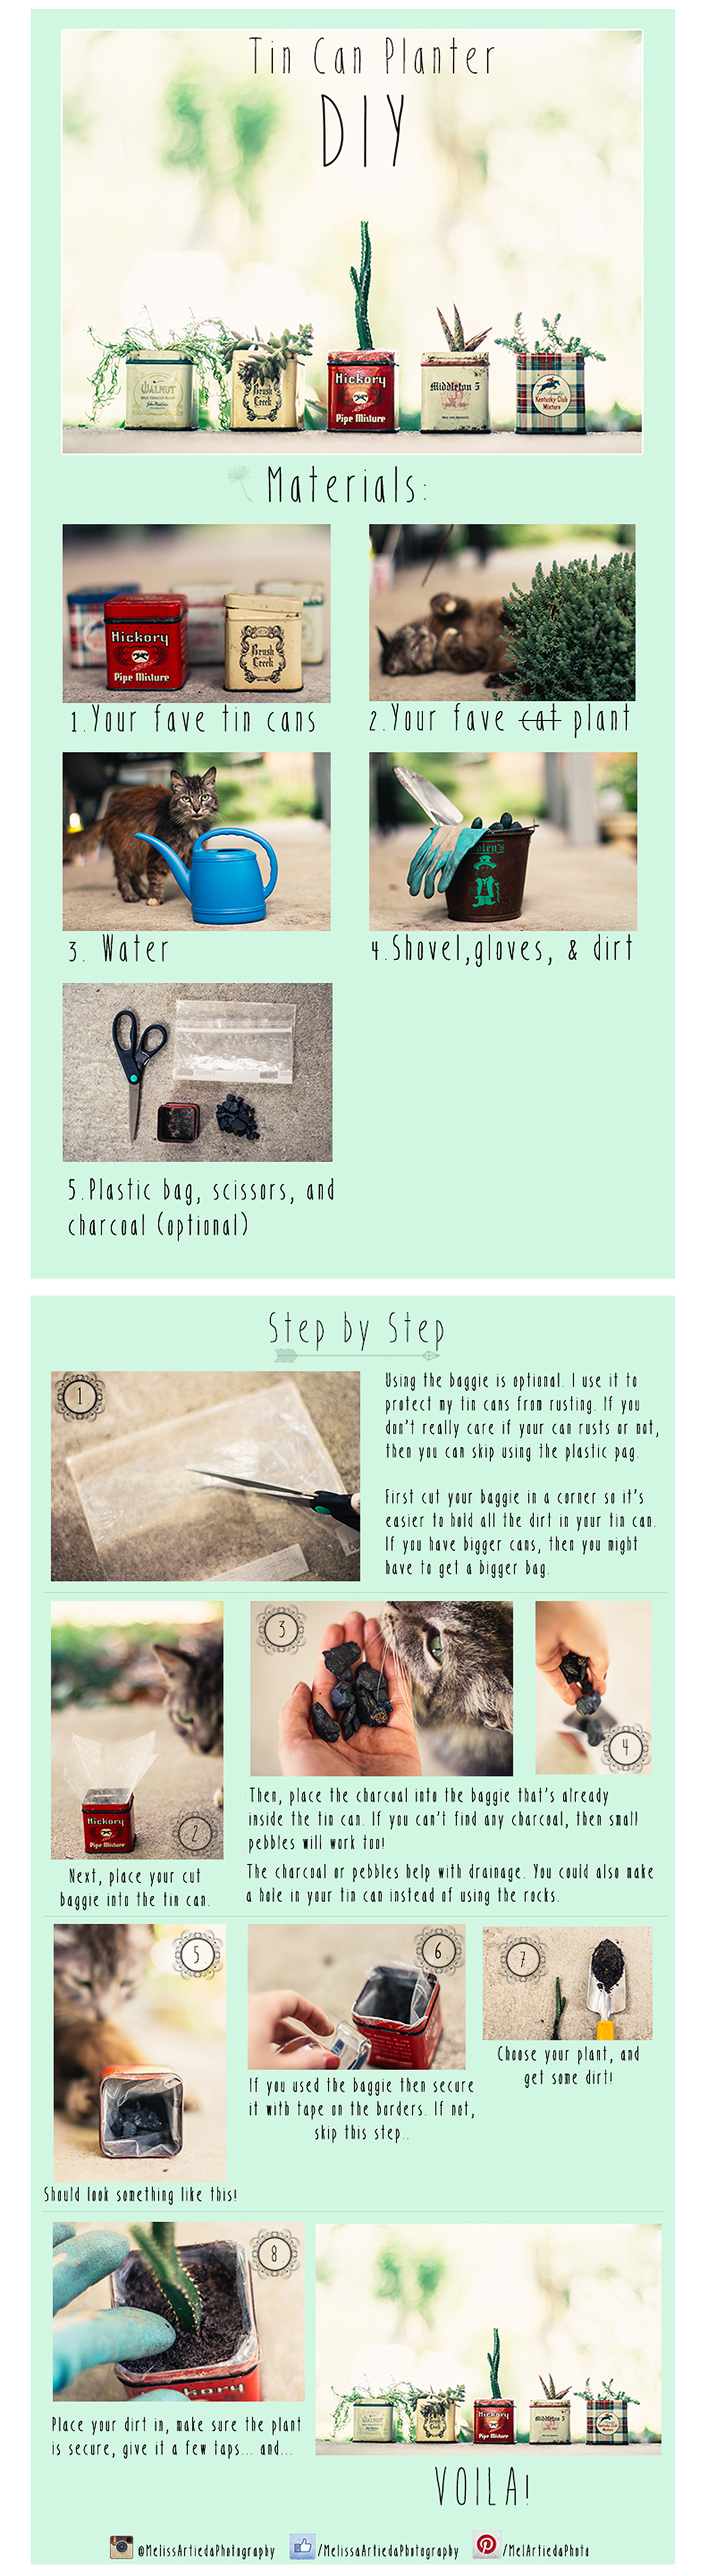 DIY Vintage Tin Can PlanterTutorial